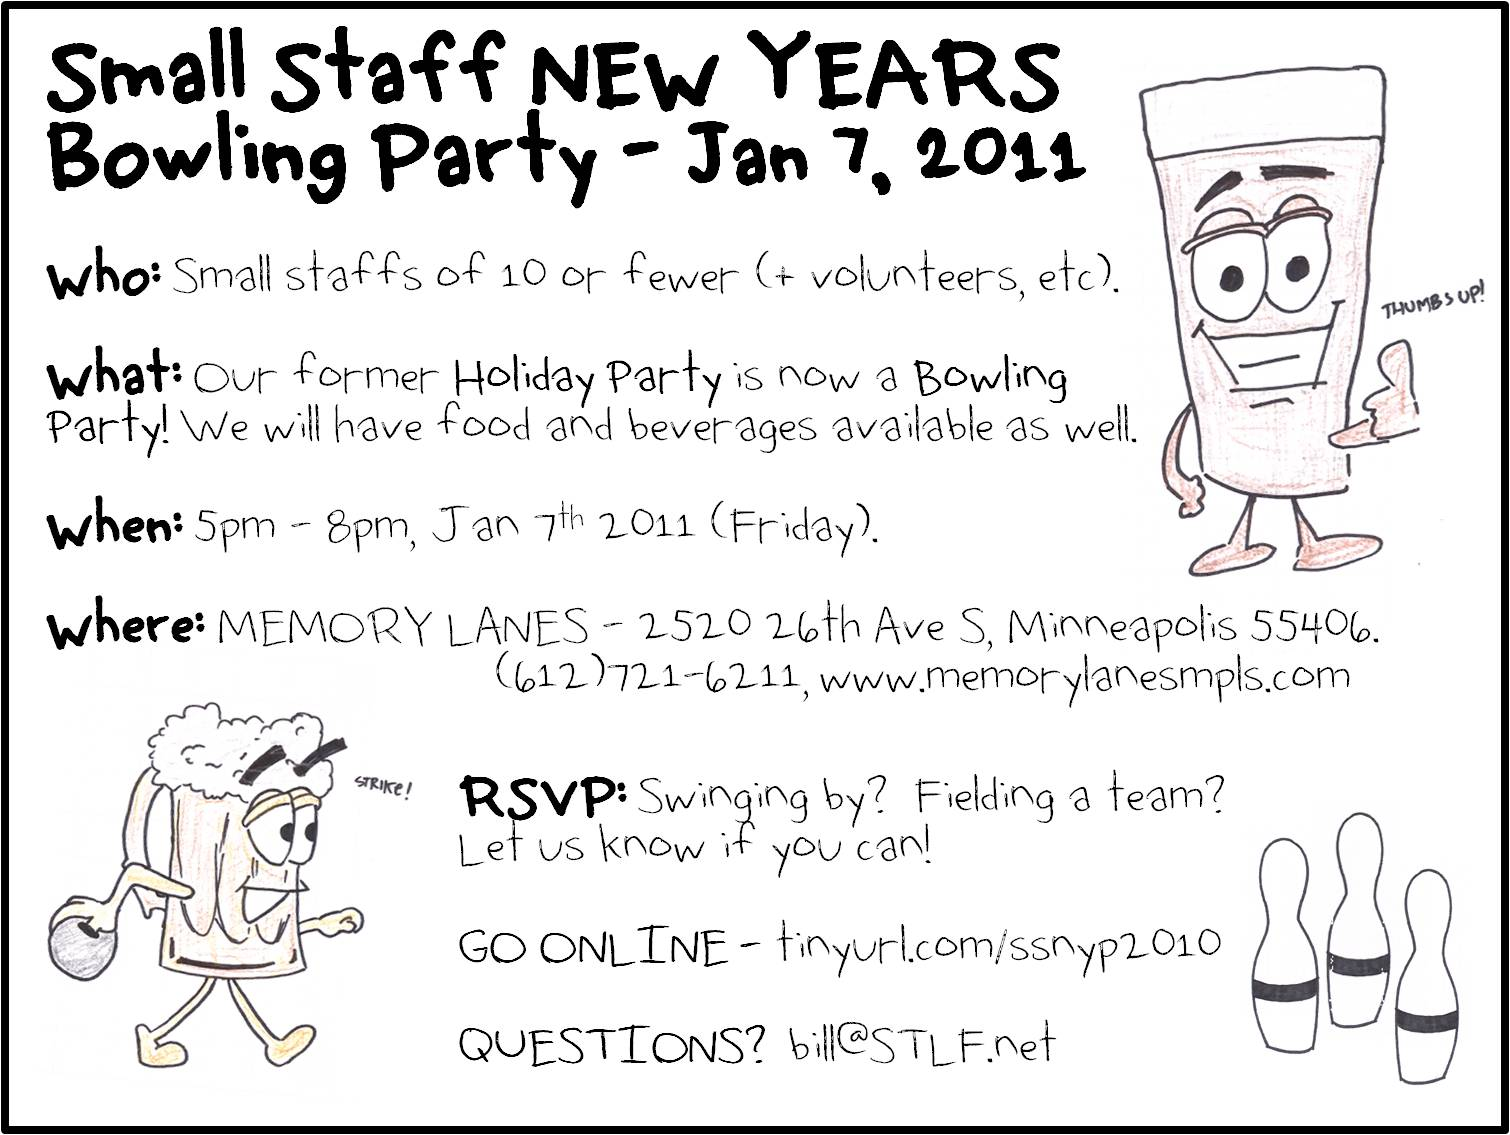 Minnesota Rising: Small Staff NEW YEARS Bowling Party!